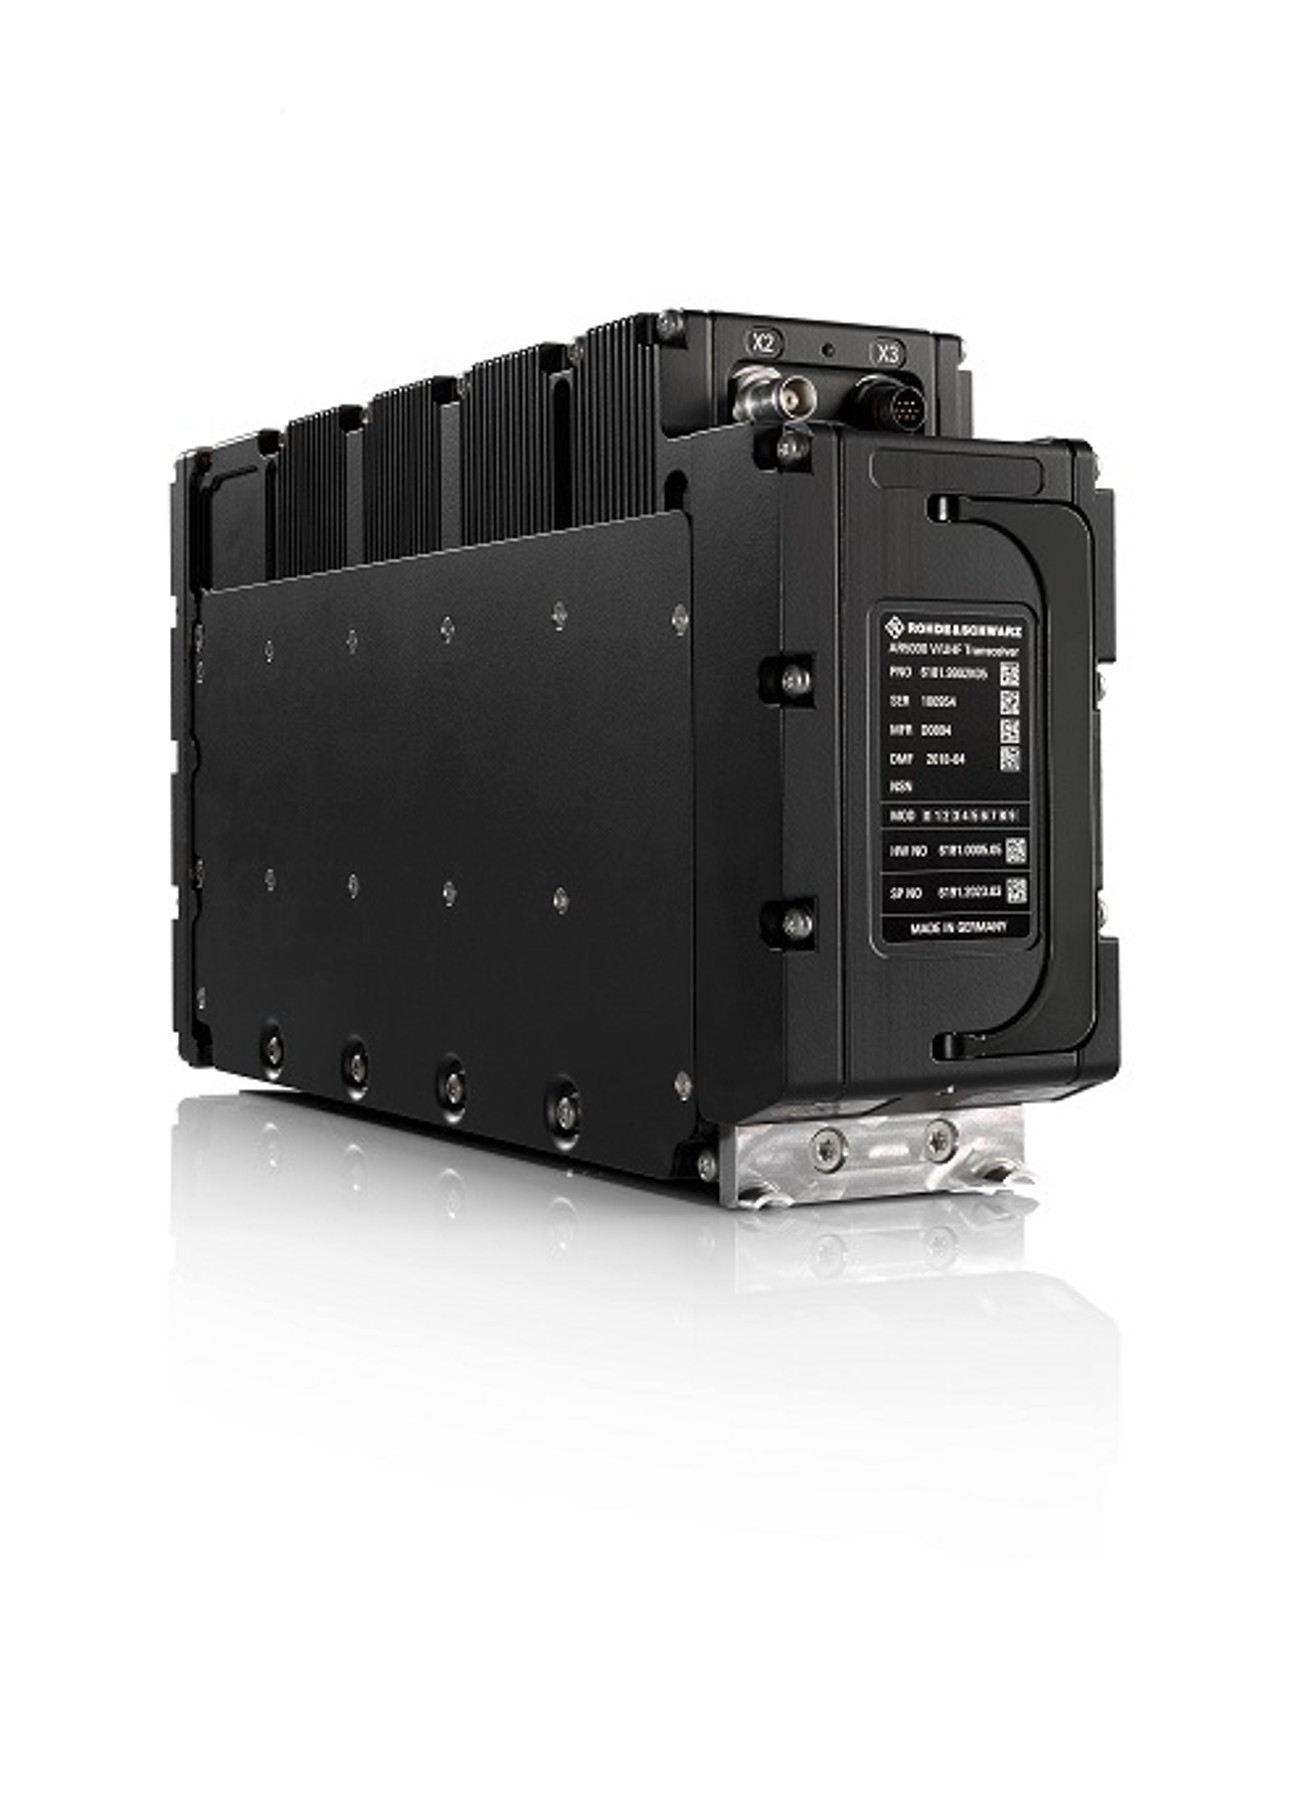 The R&S SDAR software defined airborne radio offers secure, high data rate communications.